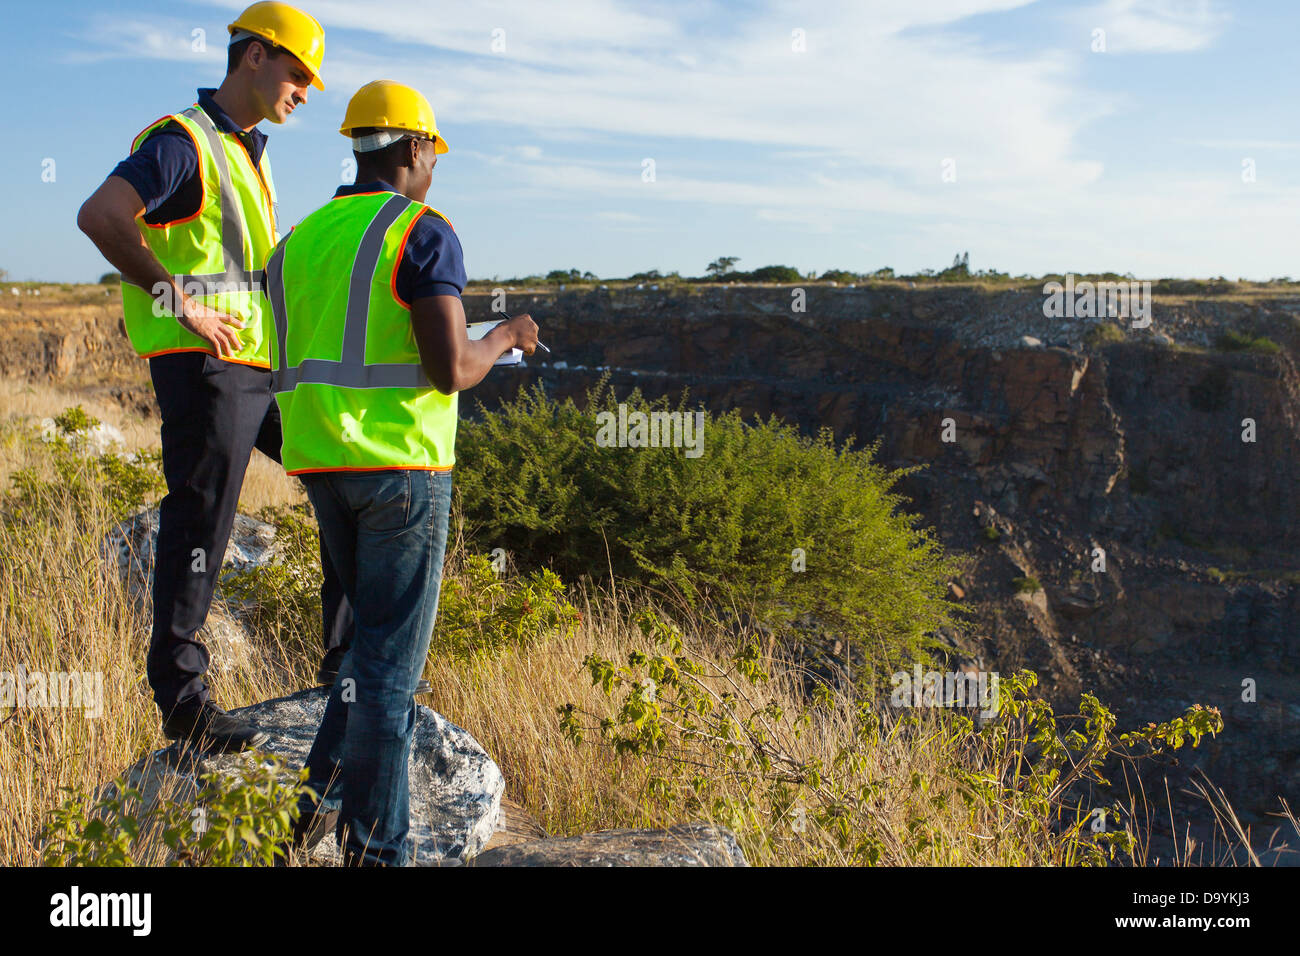 two male surveyors working at mining site - Stock Image